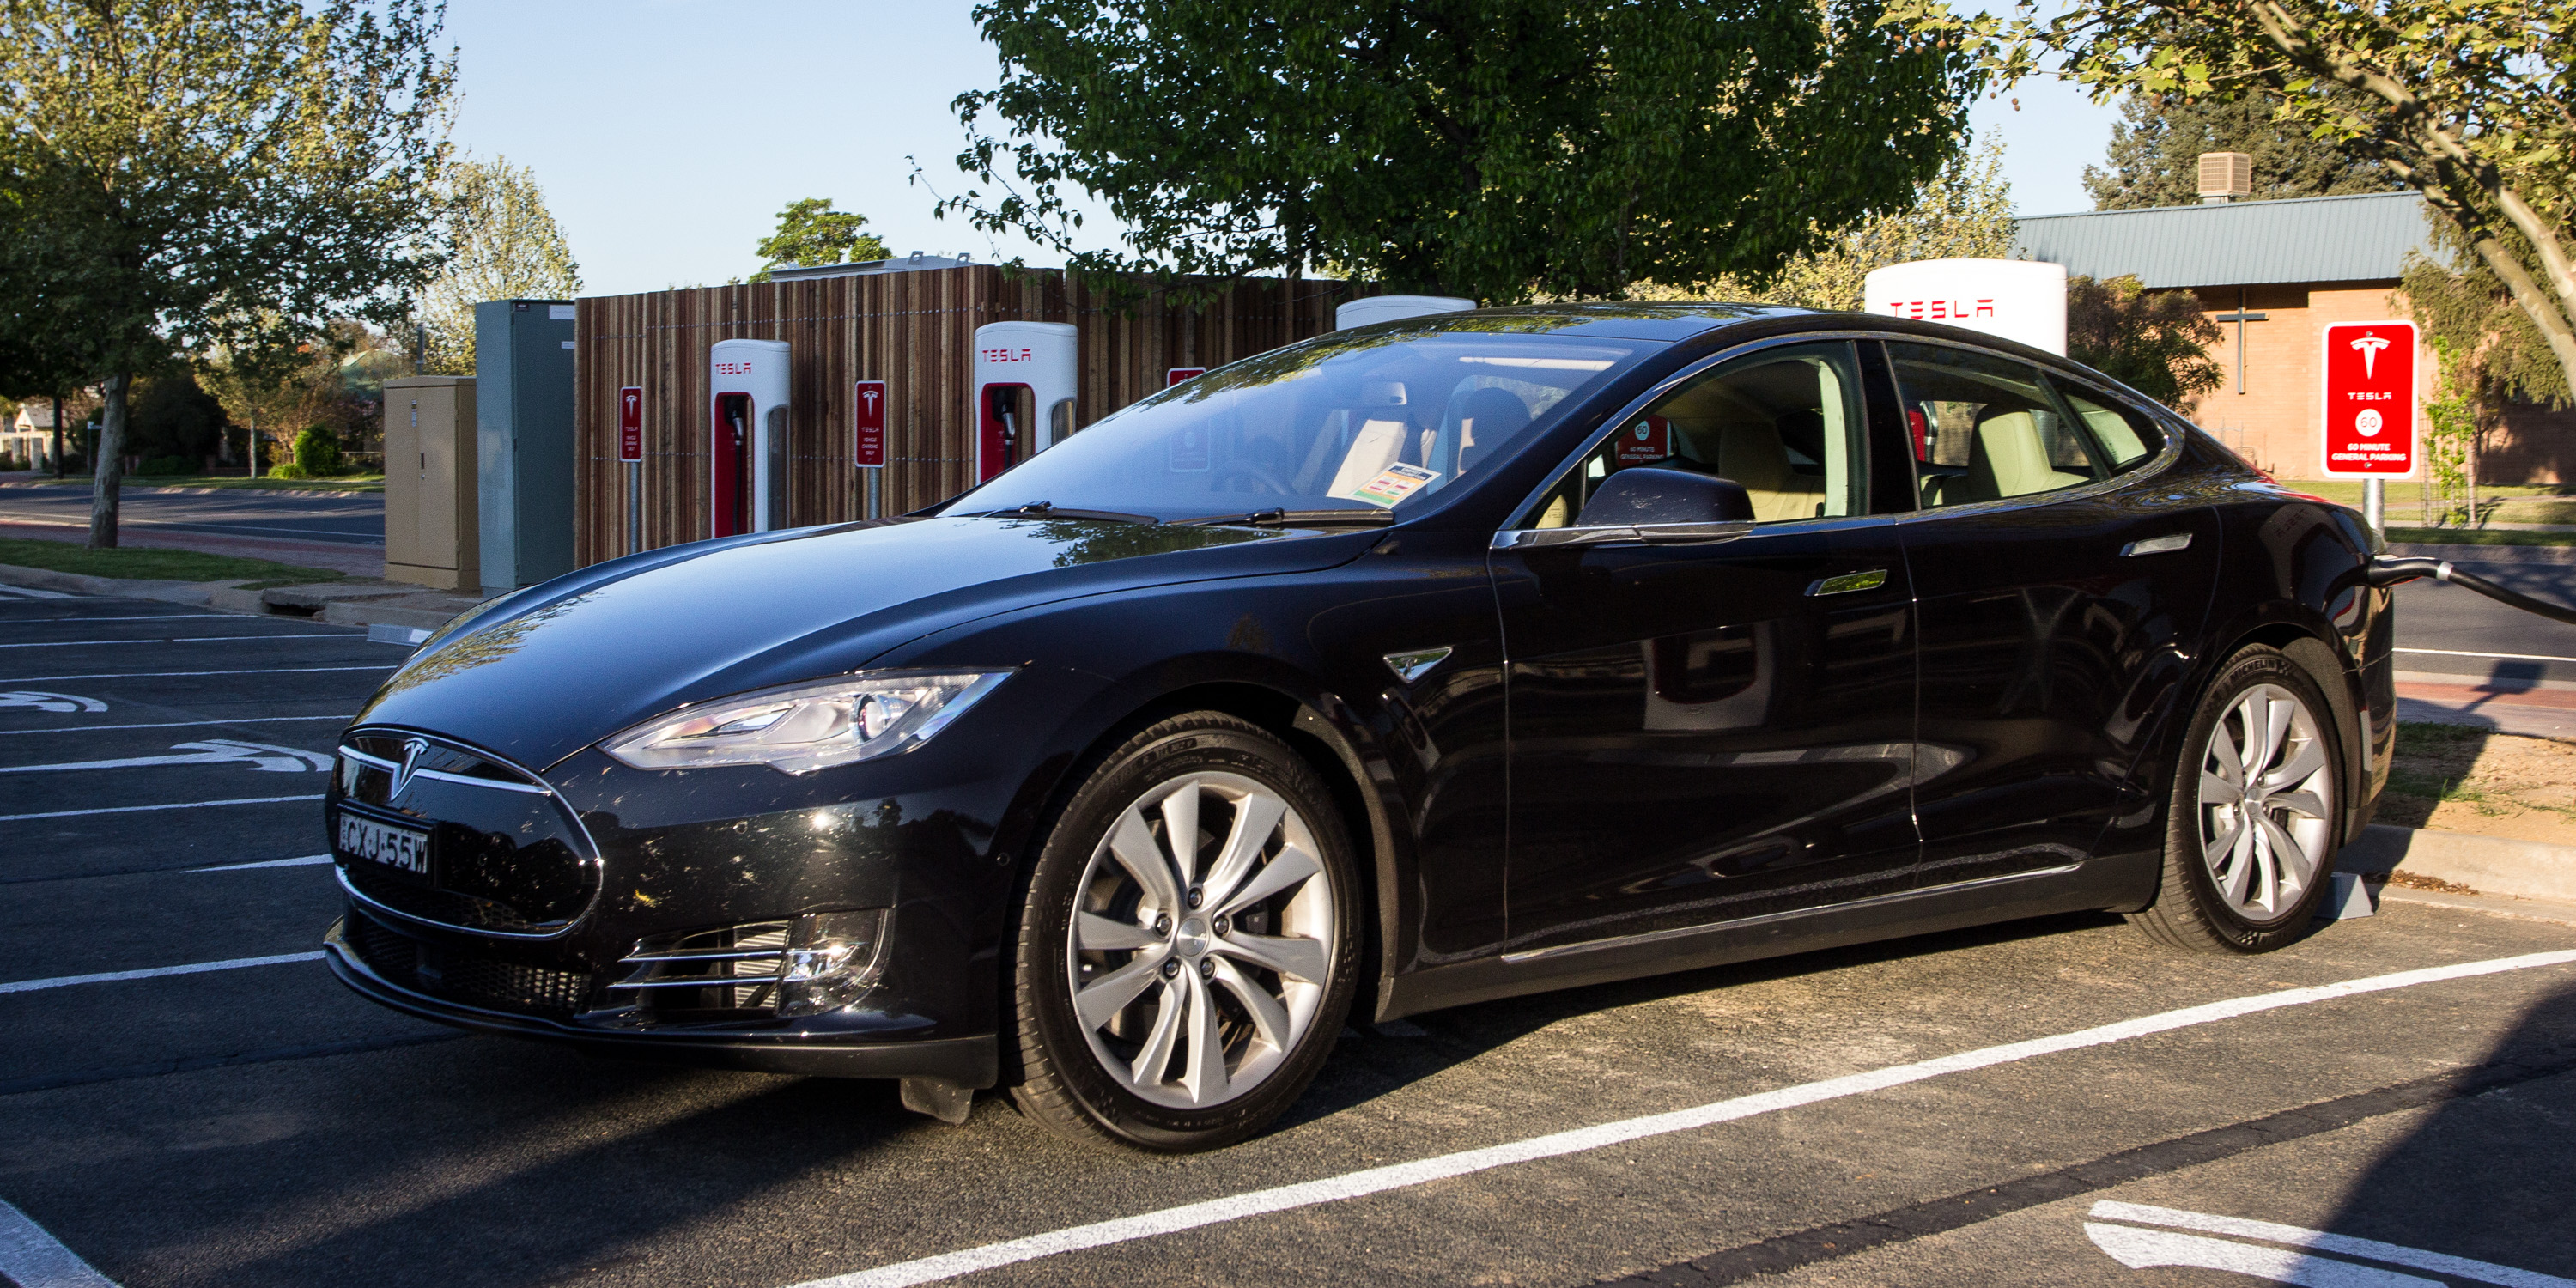 Cool Tesla Model S Sydney To Melbourne Road Trip  Photos 1 Of 54